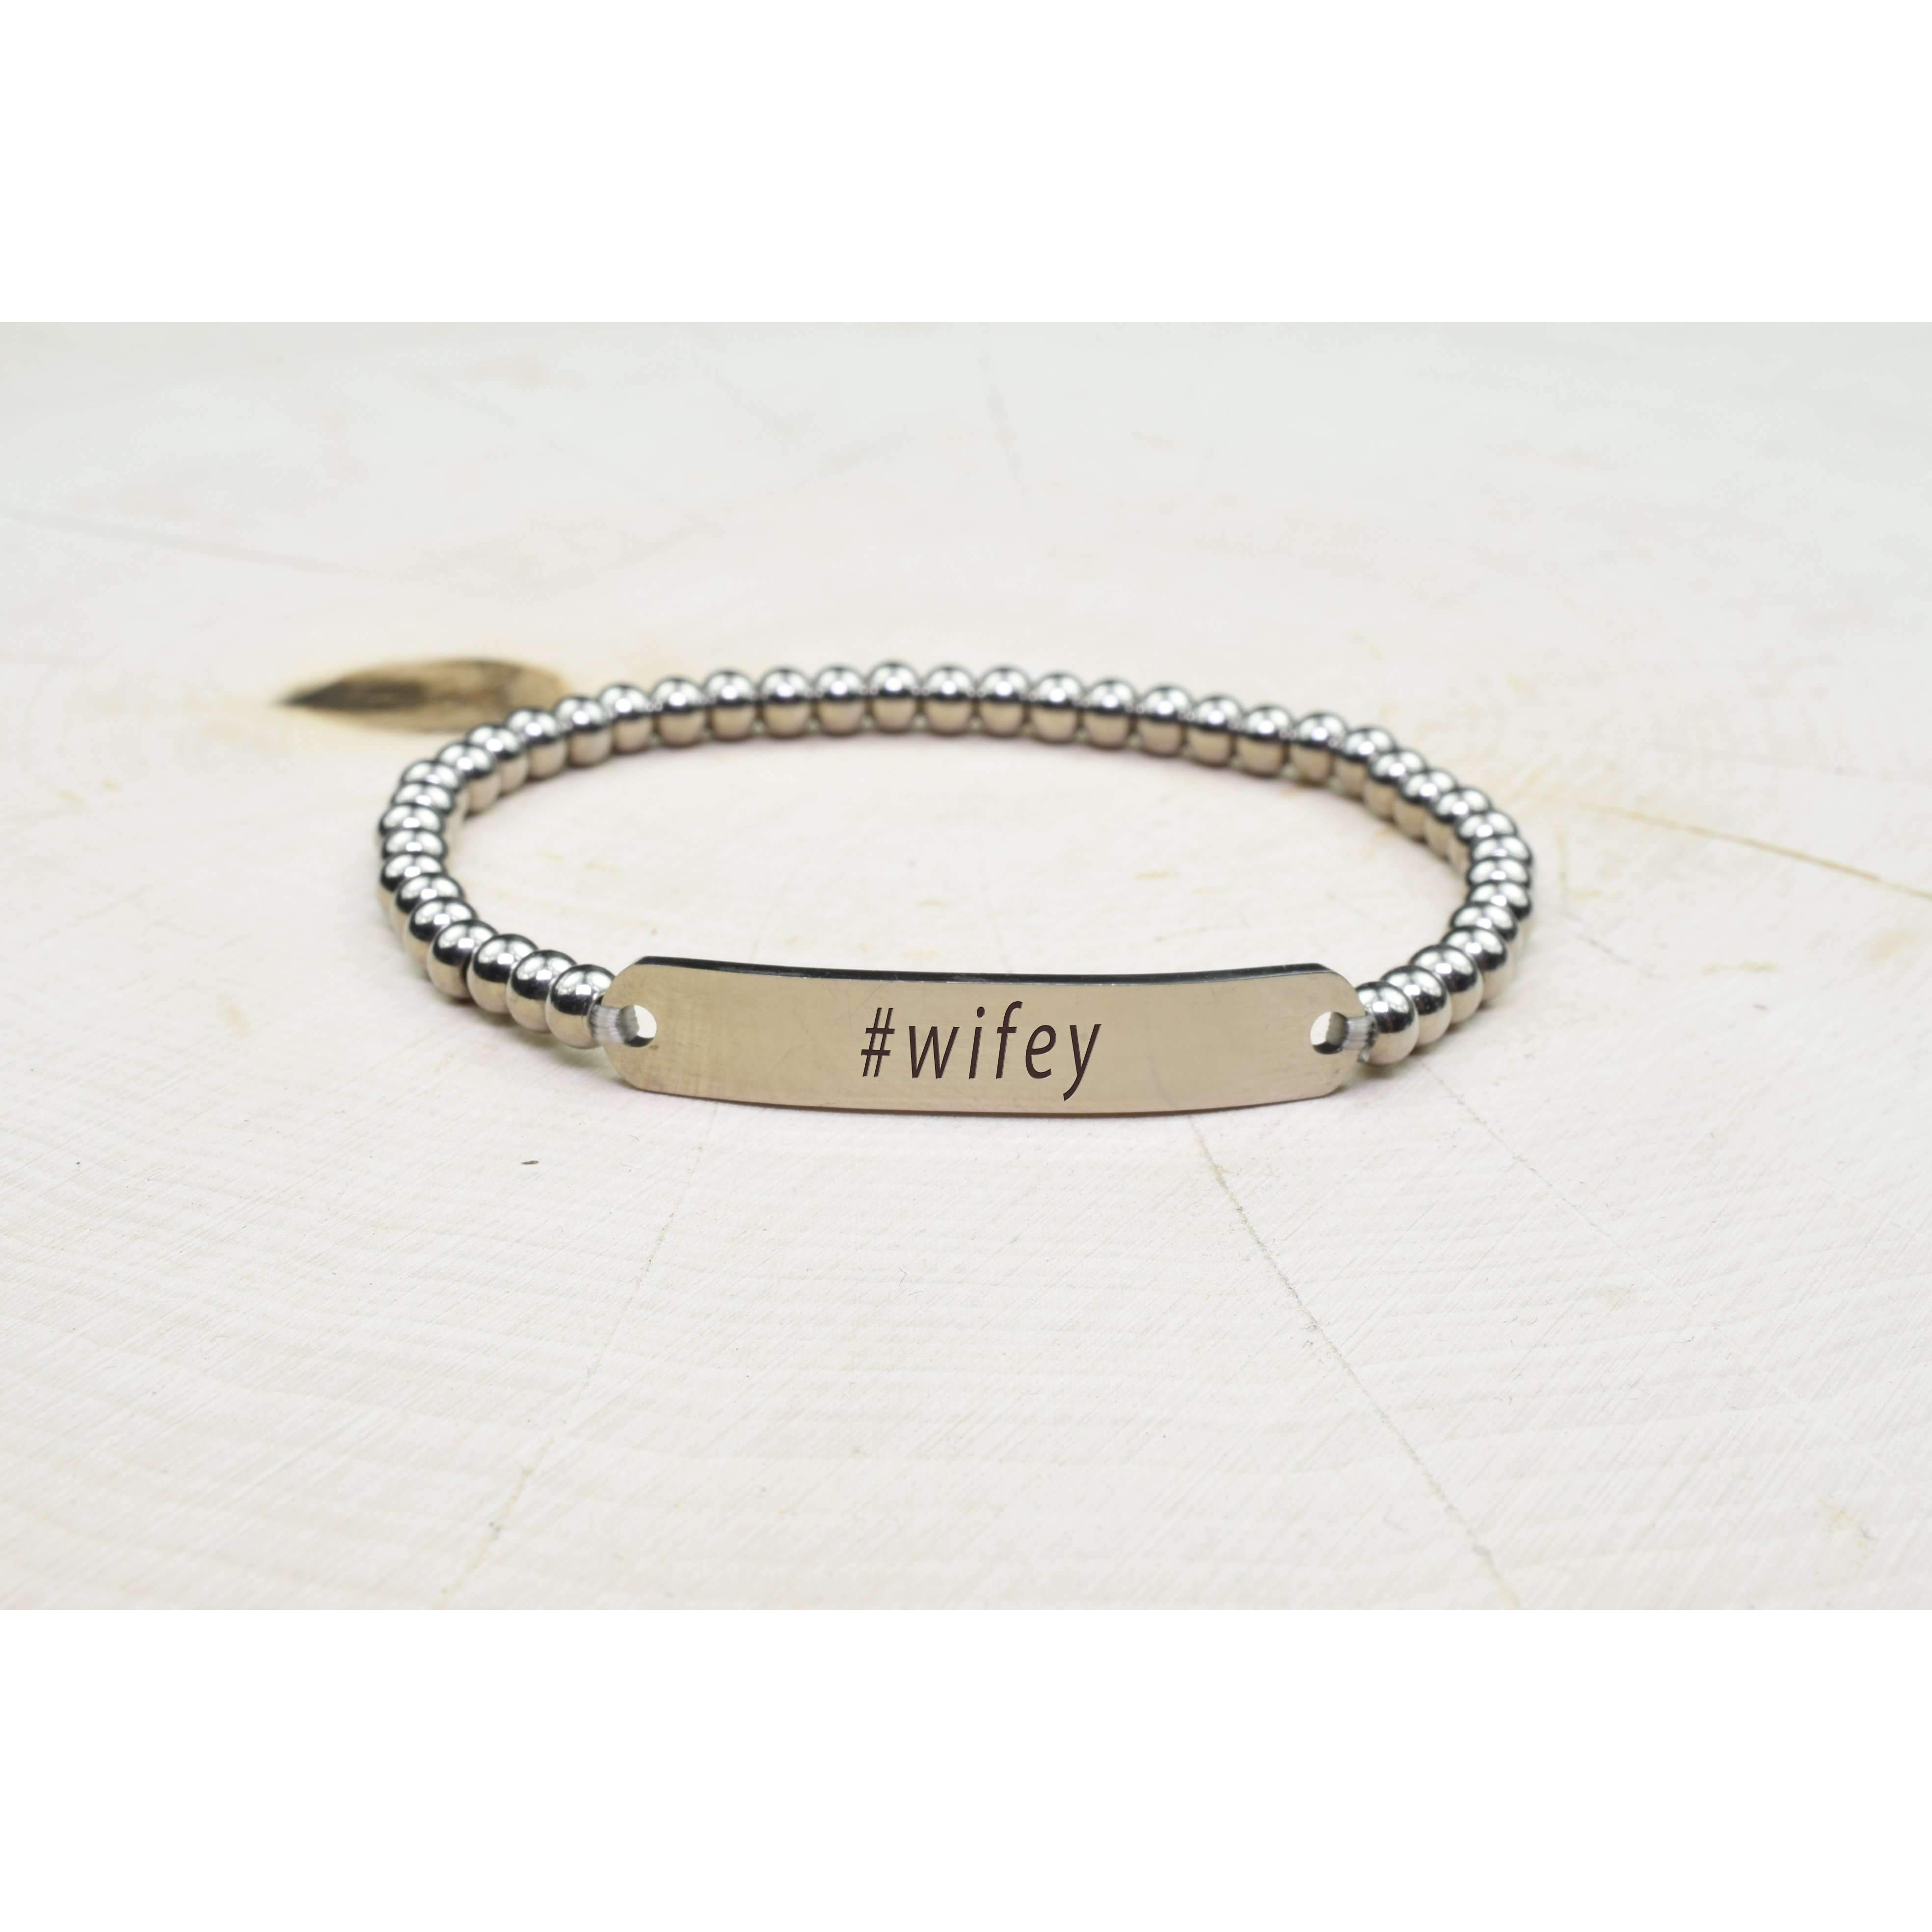 Wifey Pink Box Solid Stainless Steel Beaded Hashtag Bracelet